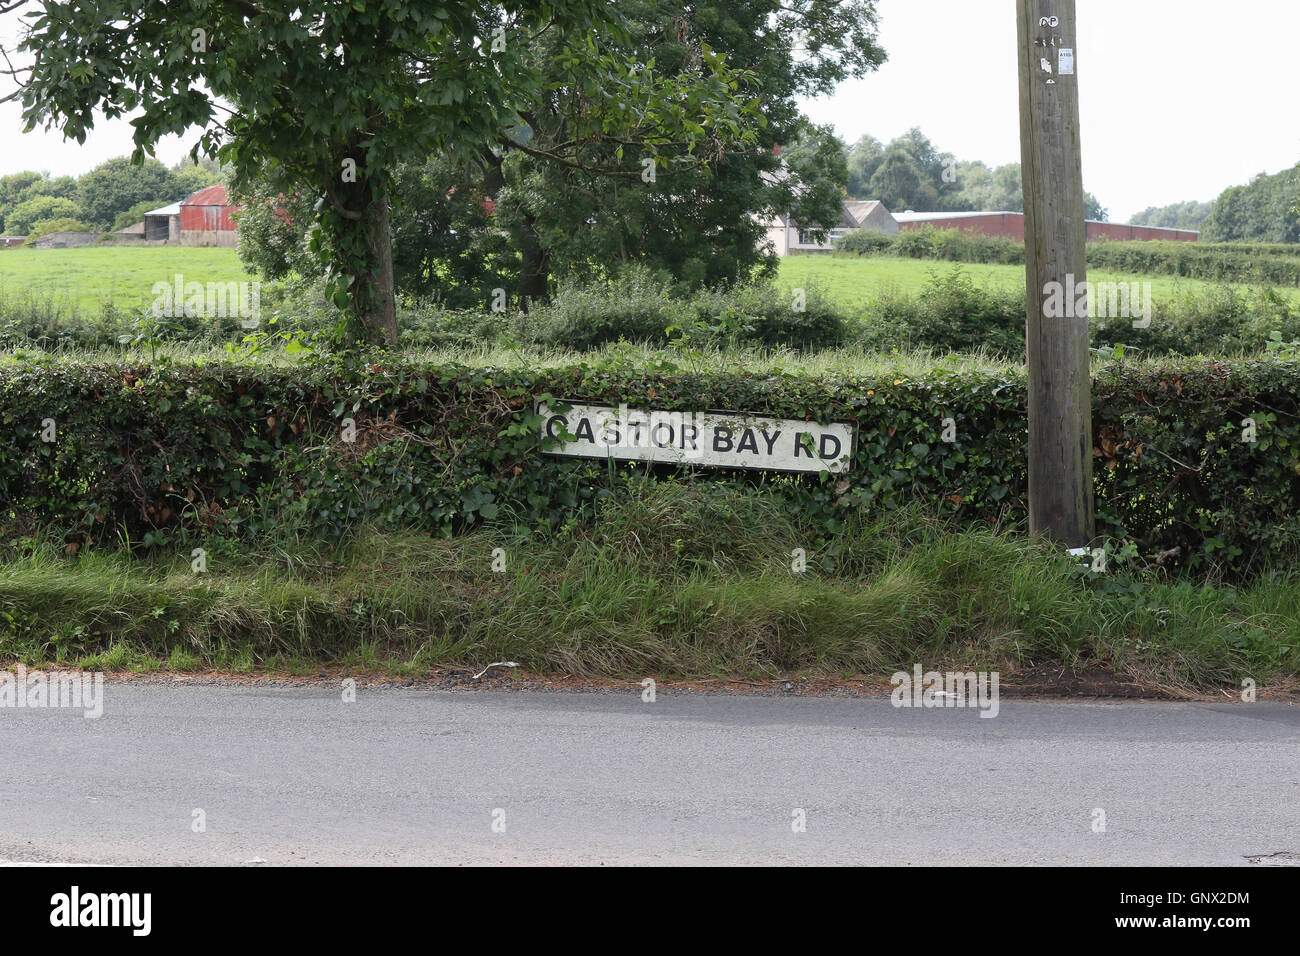 Rural road name sign in Northern Ireland - Stock Image